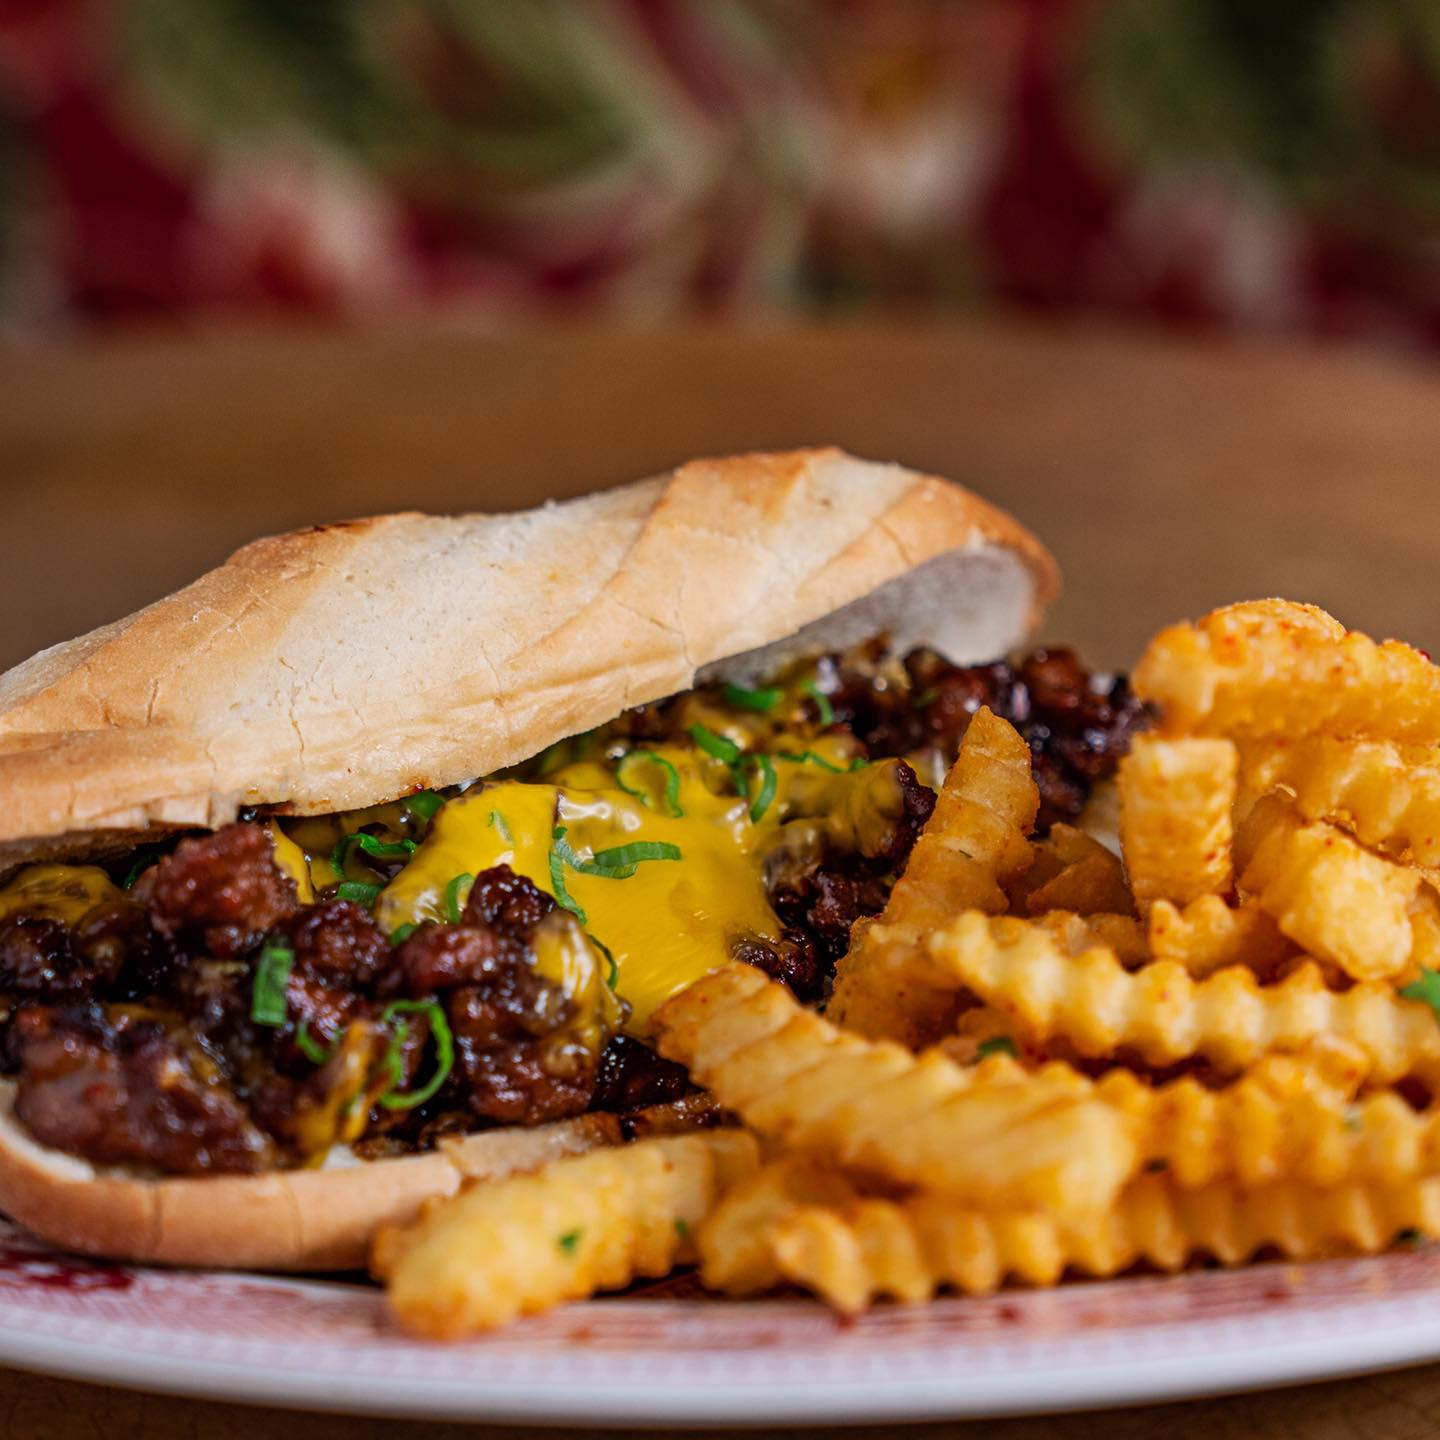 A cheesesteak on a long roll with crinkle cut fries